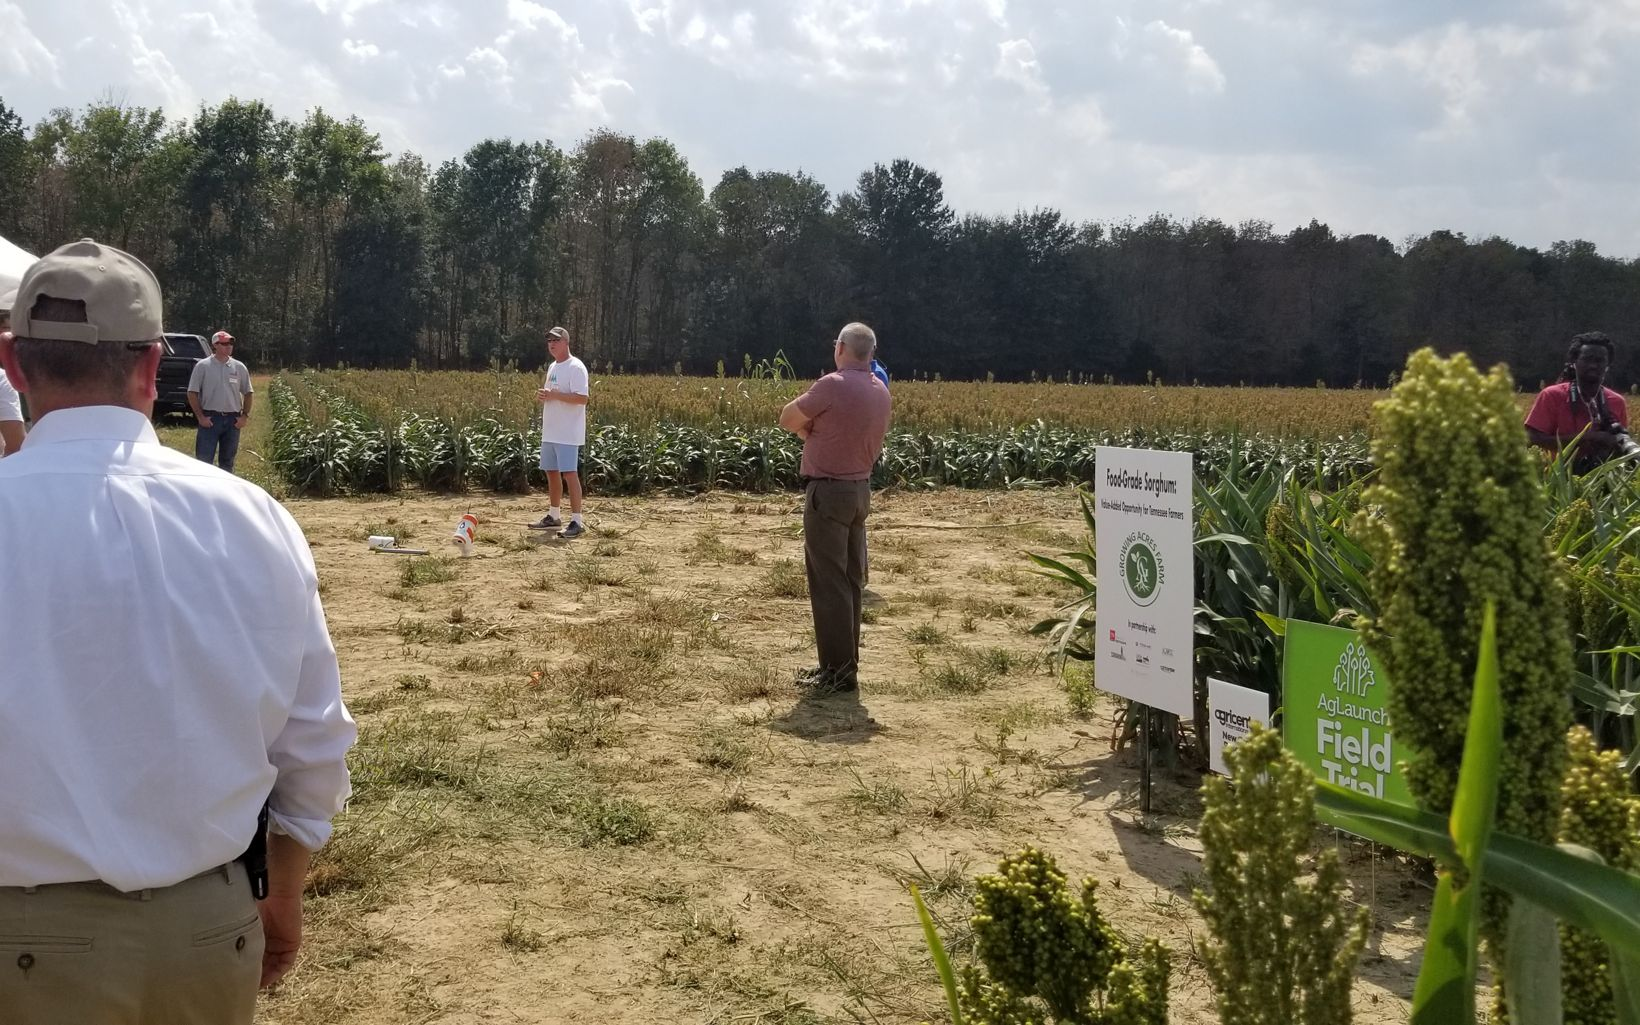 Farmers standing around a field.